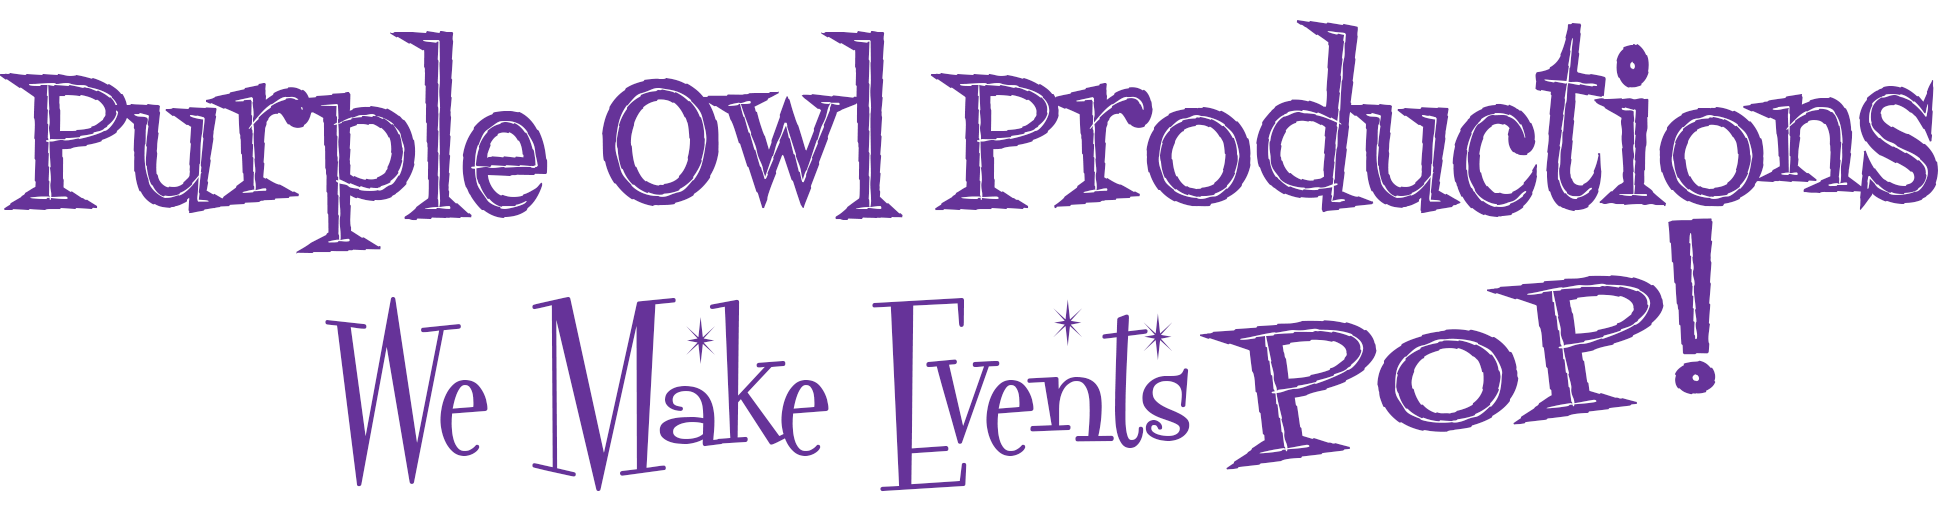 Purple Owl Productions